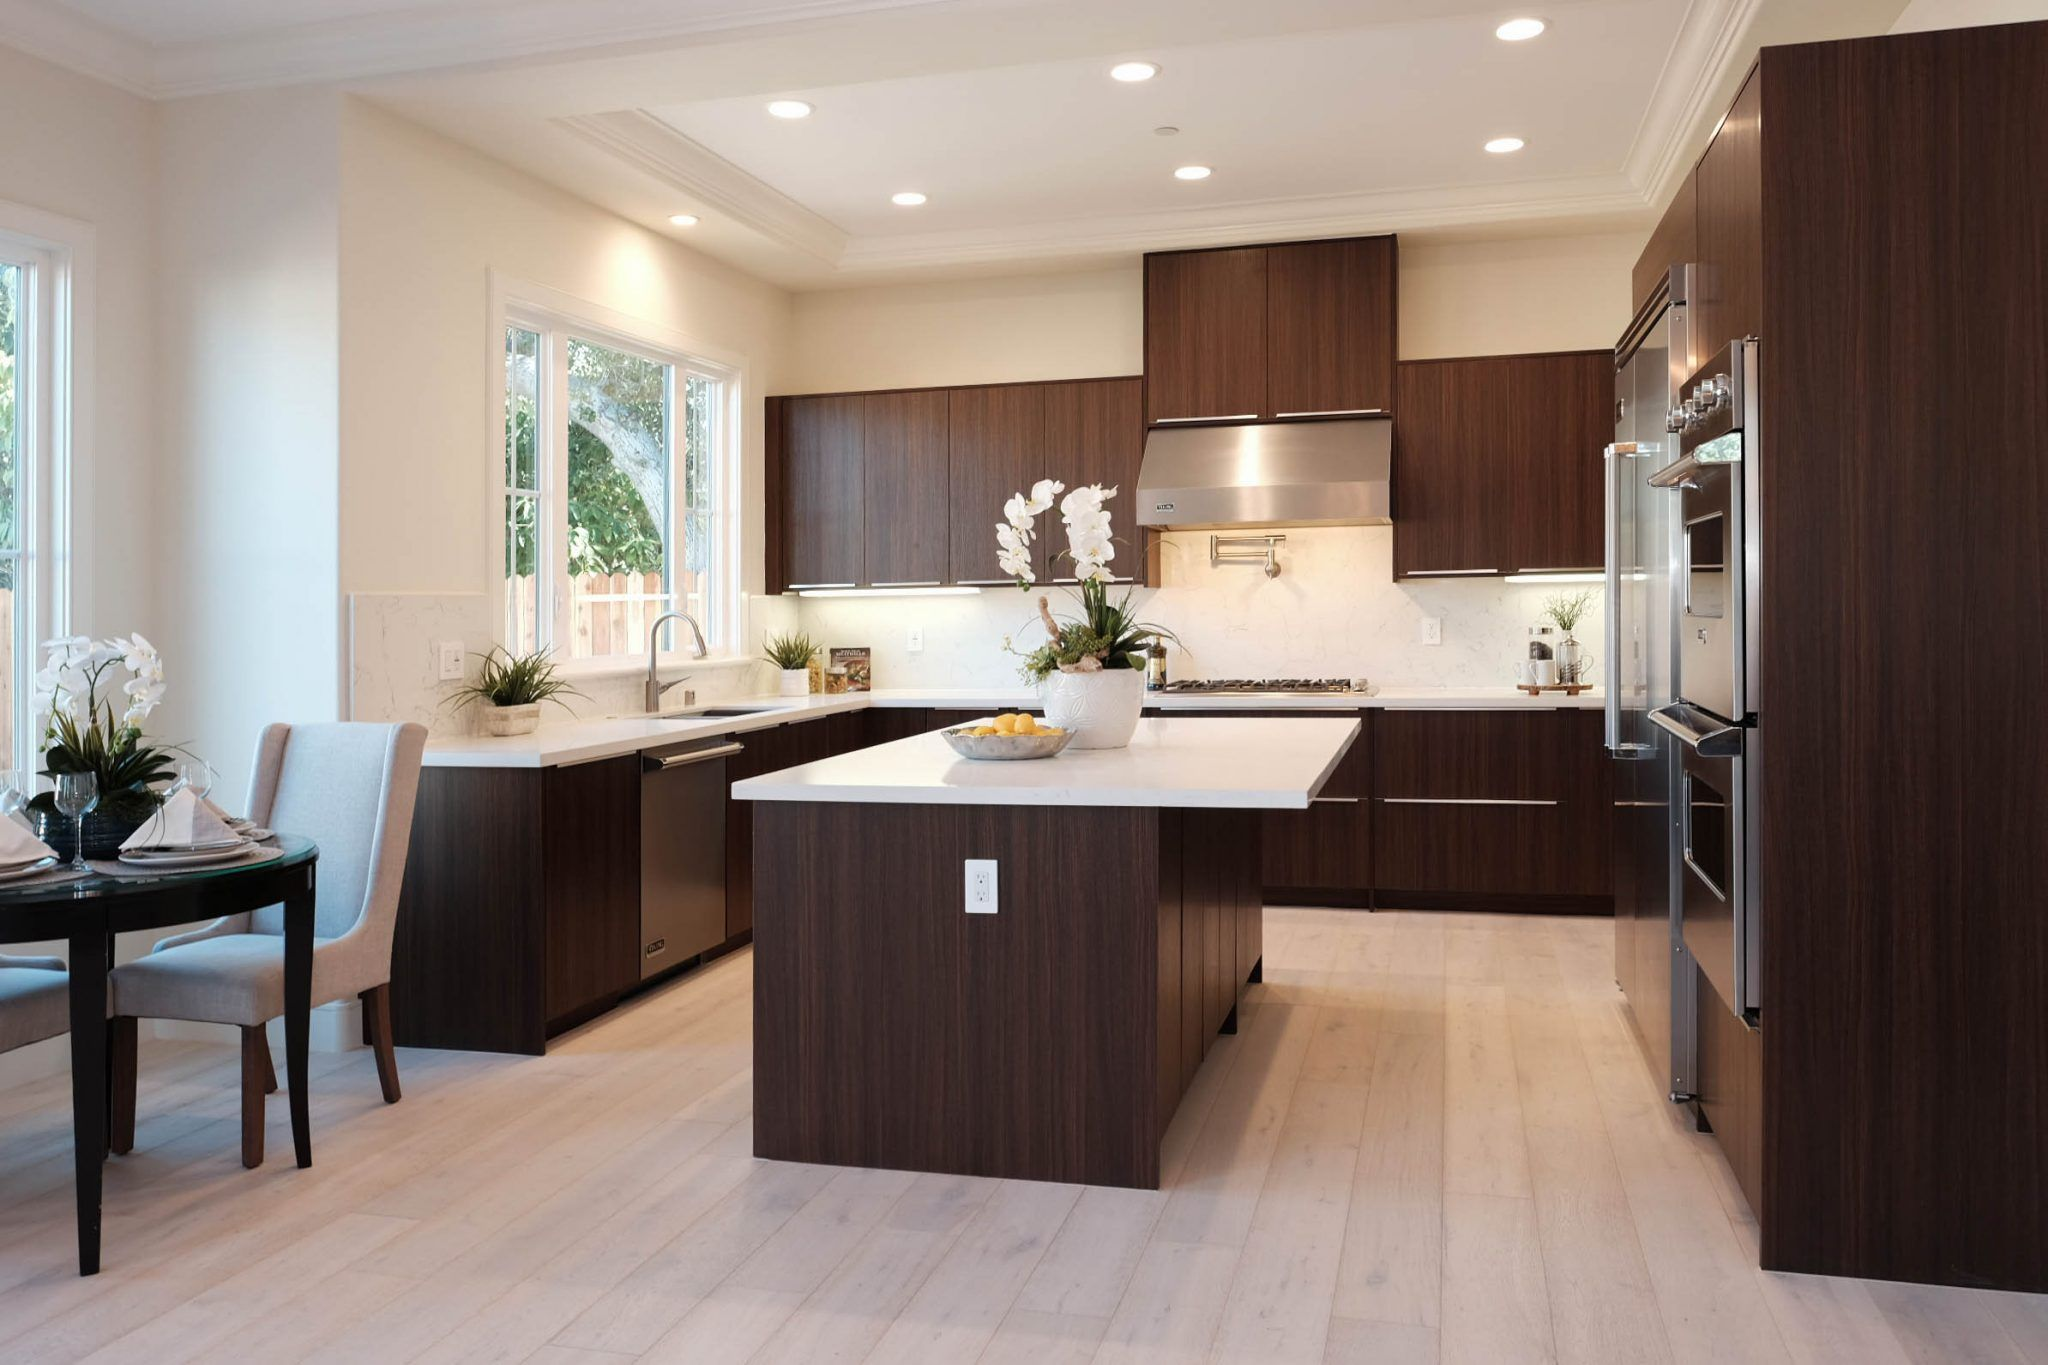 Everything About Slab Cabinet Doors Aka European Style Cabinets Kitchen Cabinet Styles Kitchen Cabinet Door Styles European Kitchen Cabinets